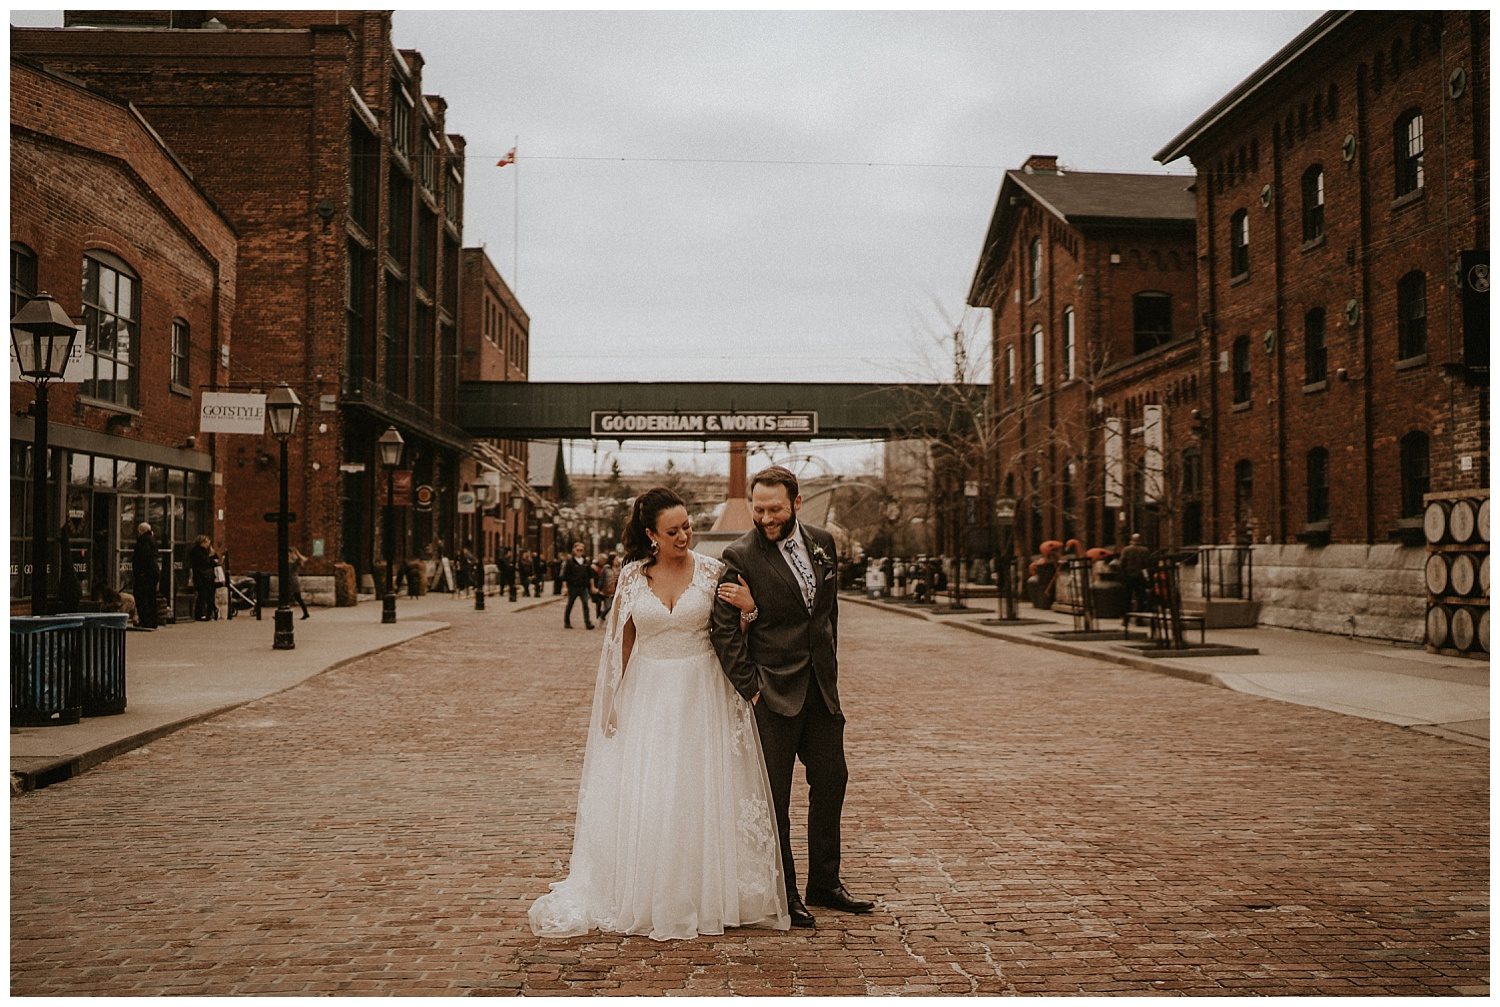 Katie Marie Photography | Archeo Wedding Arta Gallery Wedding | Distillery District Wedding | Toronto Wedding Photographer | Hamilton Toronto Ontario Wedding Photographer |_0056.jpg